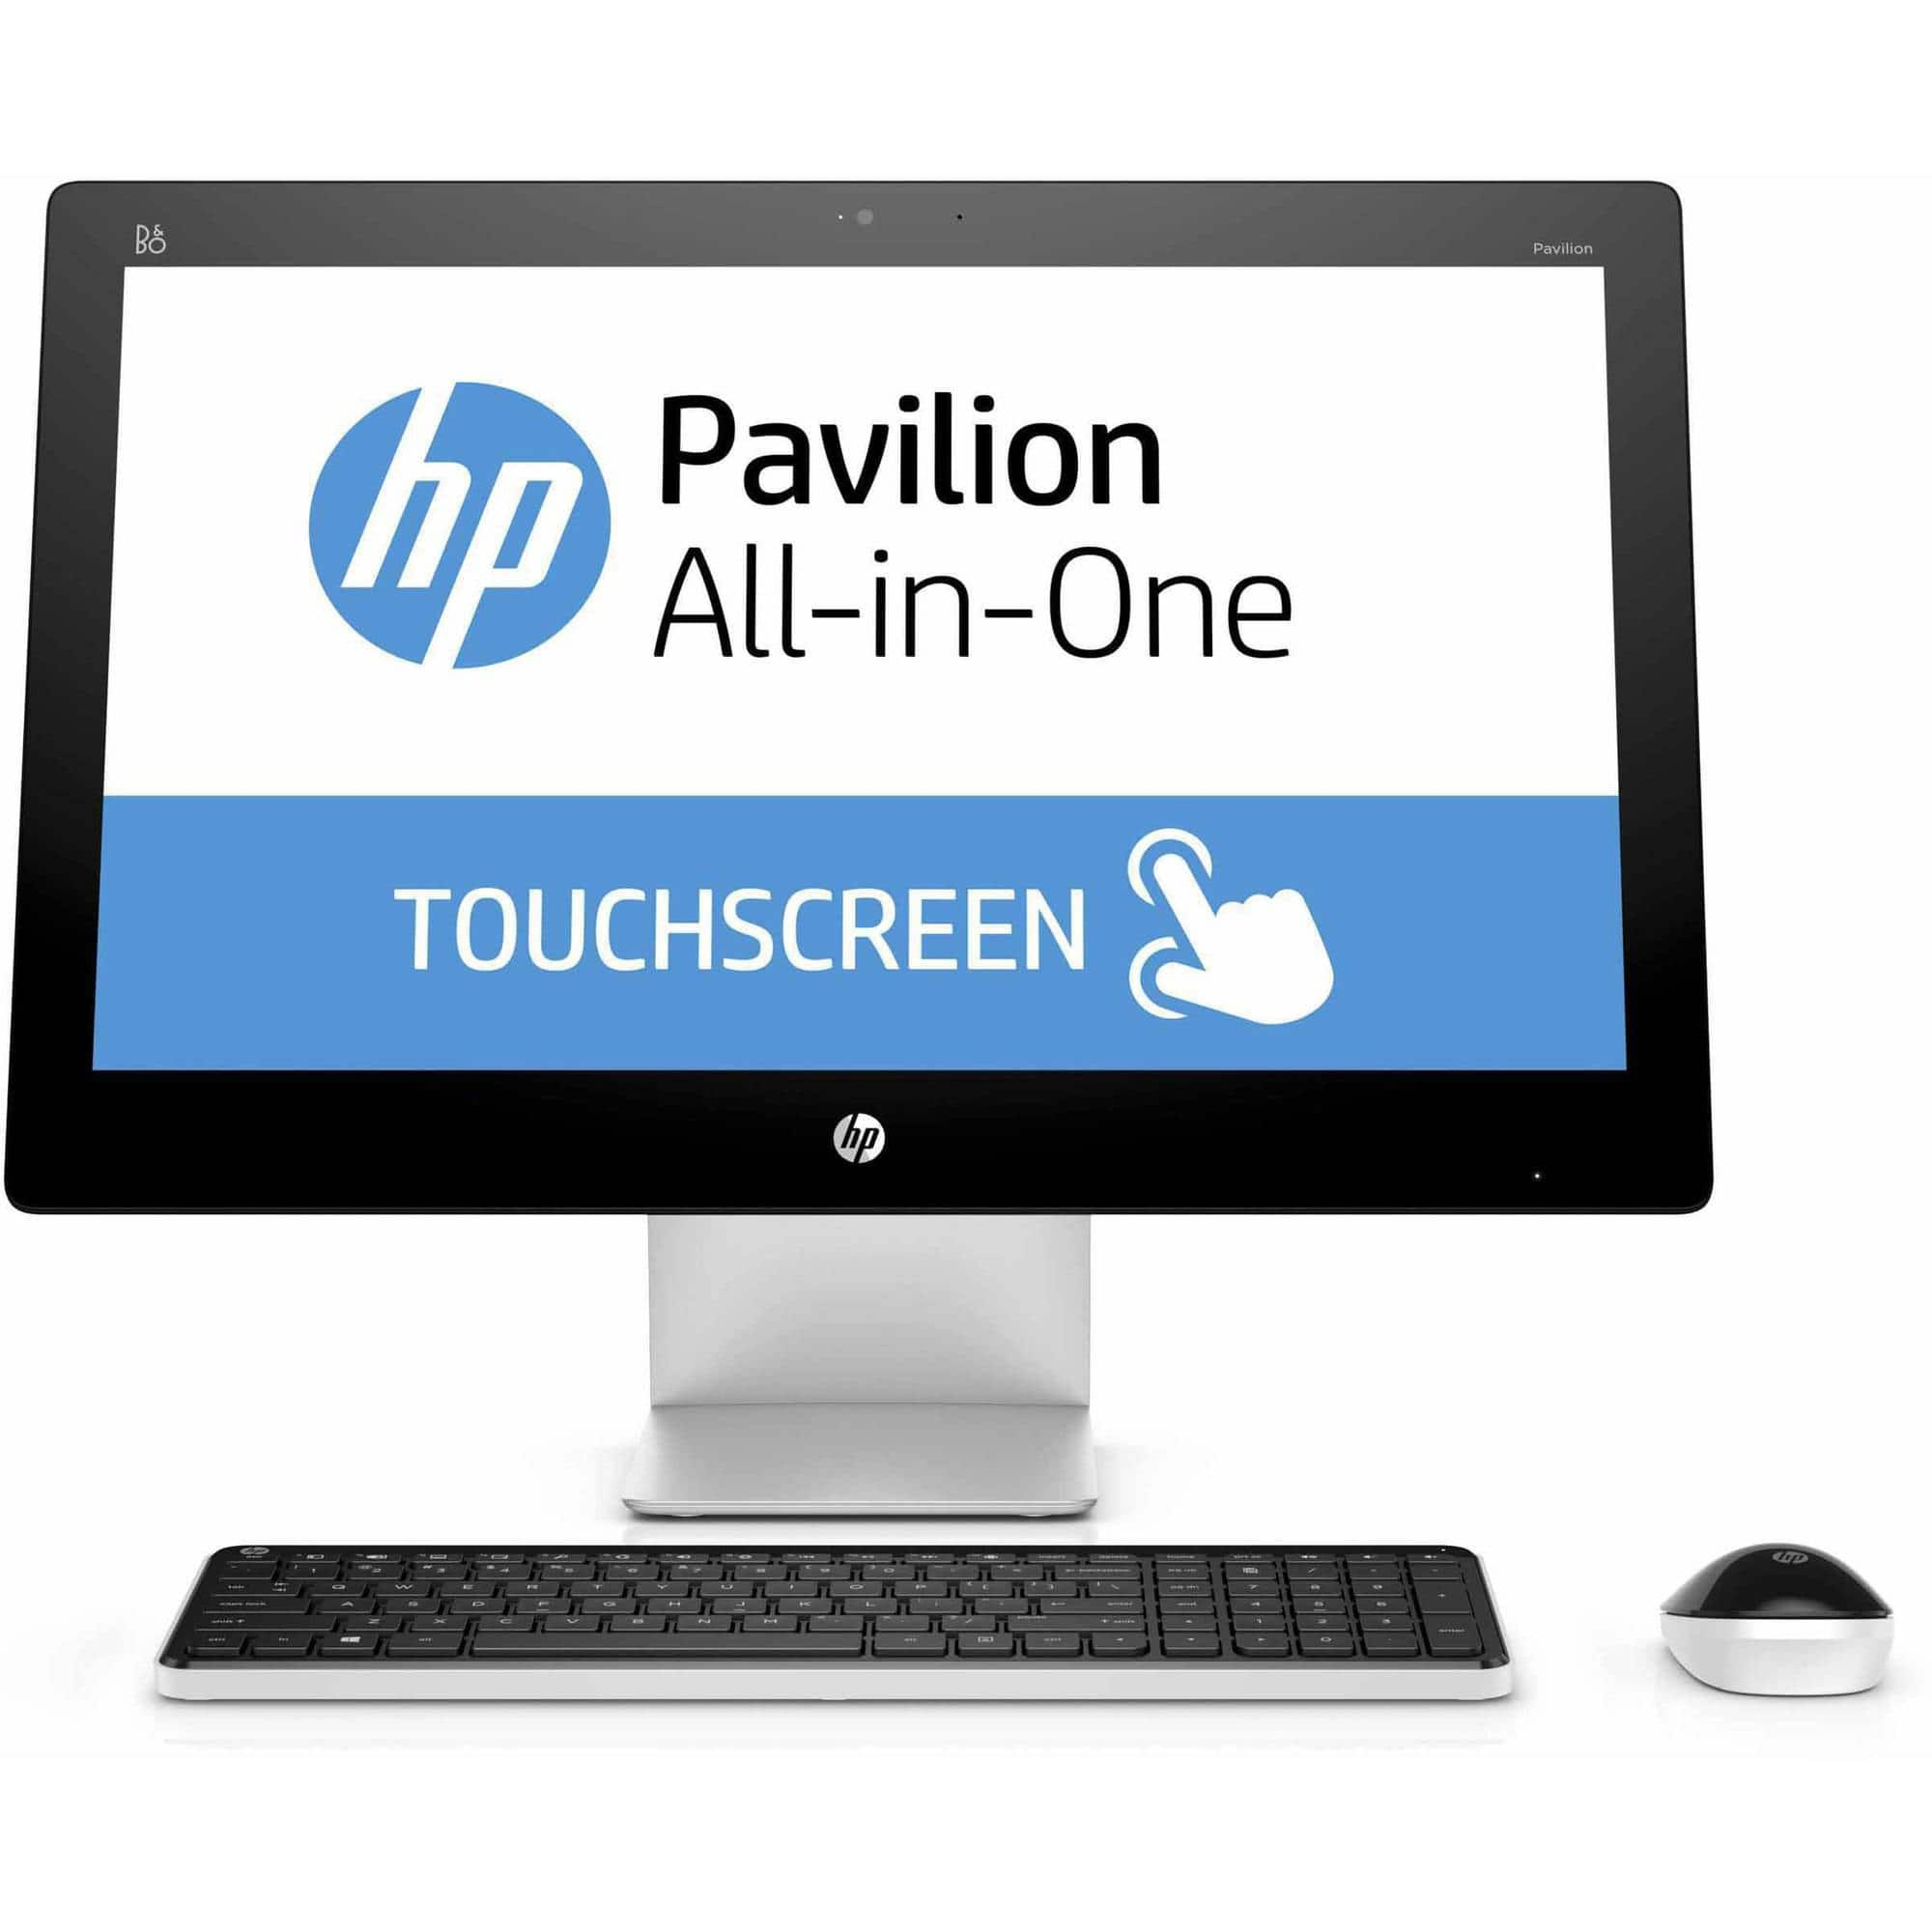 "YMMV B&M Walmart - HP Pavilion 23-q113w All-in-One Desktop PC with Intel Core i3-4170T Processor, 6GB Memory, 23"" touch screen, 1TB Hard Drive and Windows 10 Home"